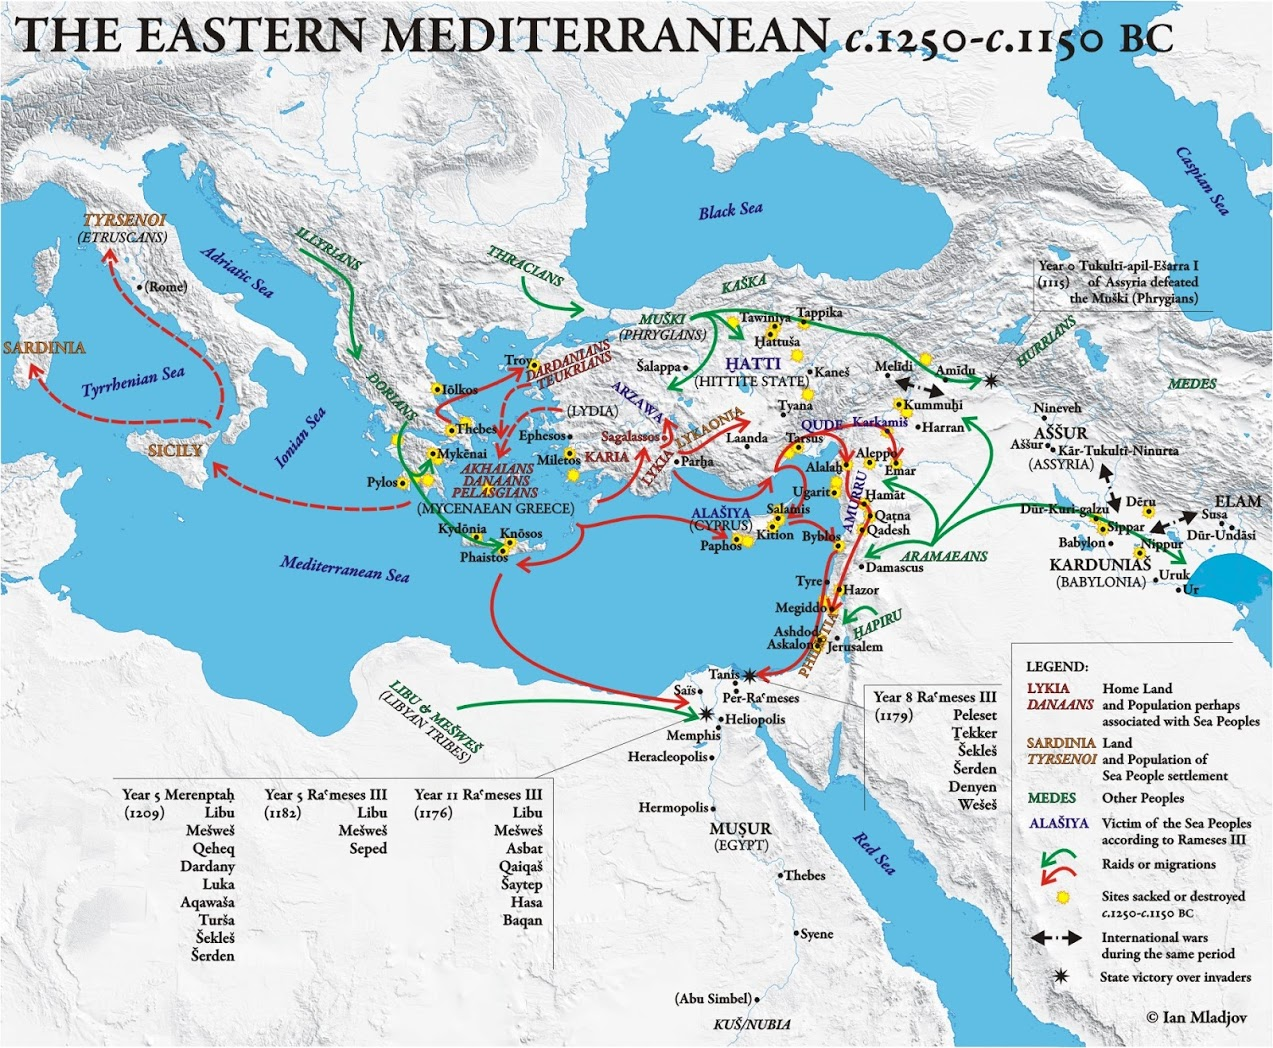 a history of the conflict in cyprus an island in the eastern mediterranean So what's different in this latest energy showdown in the eastern mediterranean in the conflict in neighboring reunify the divided island of cyprus.